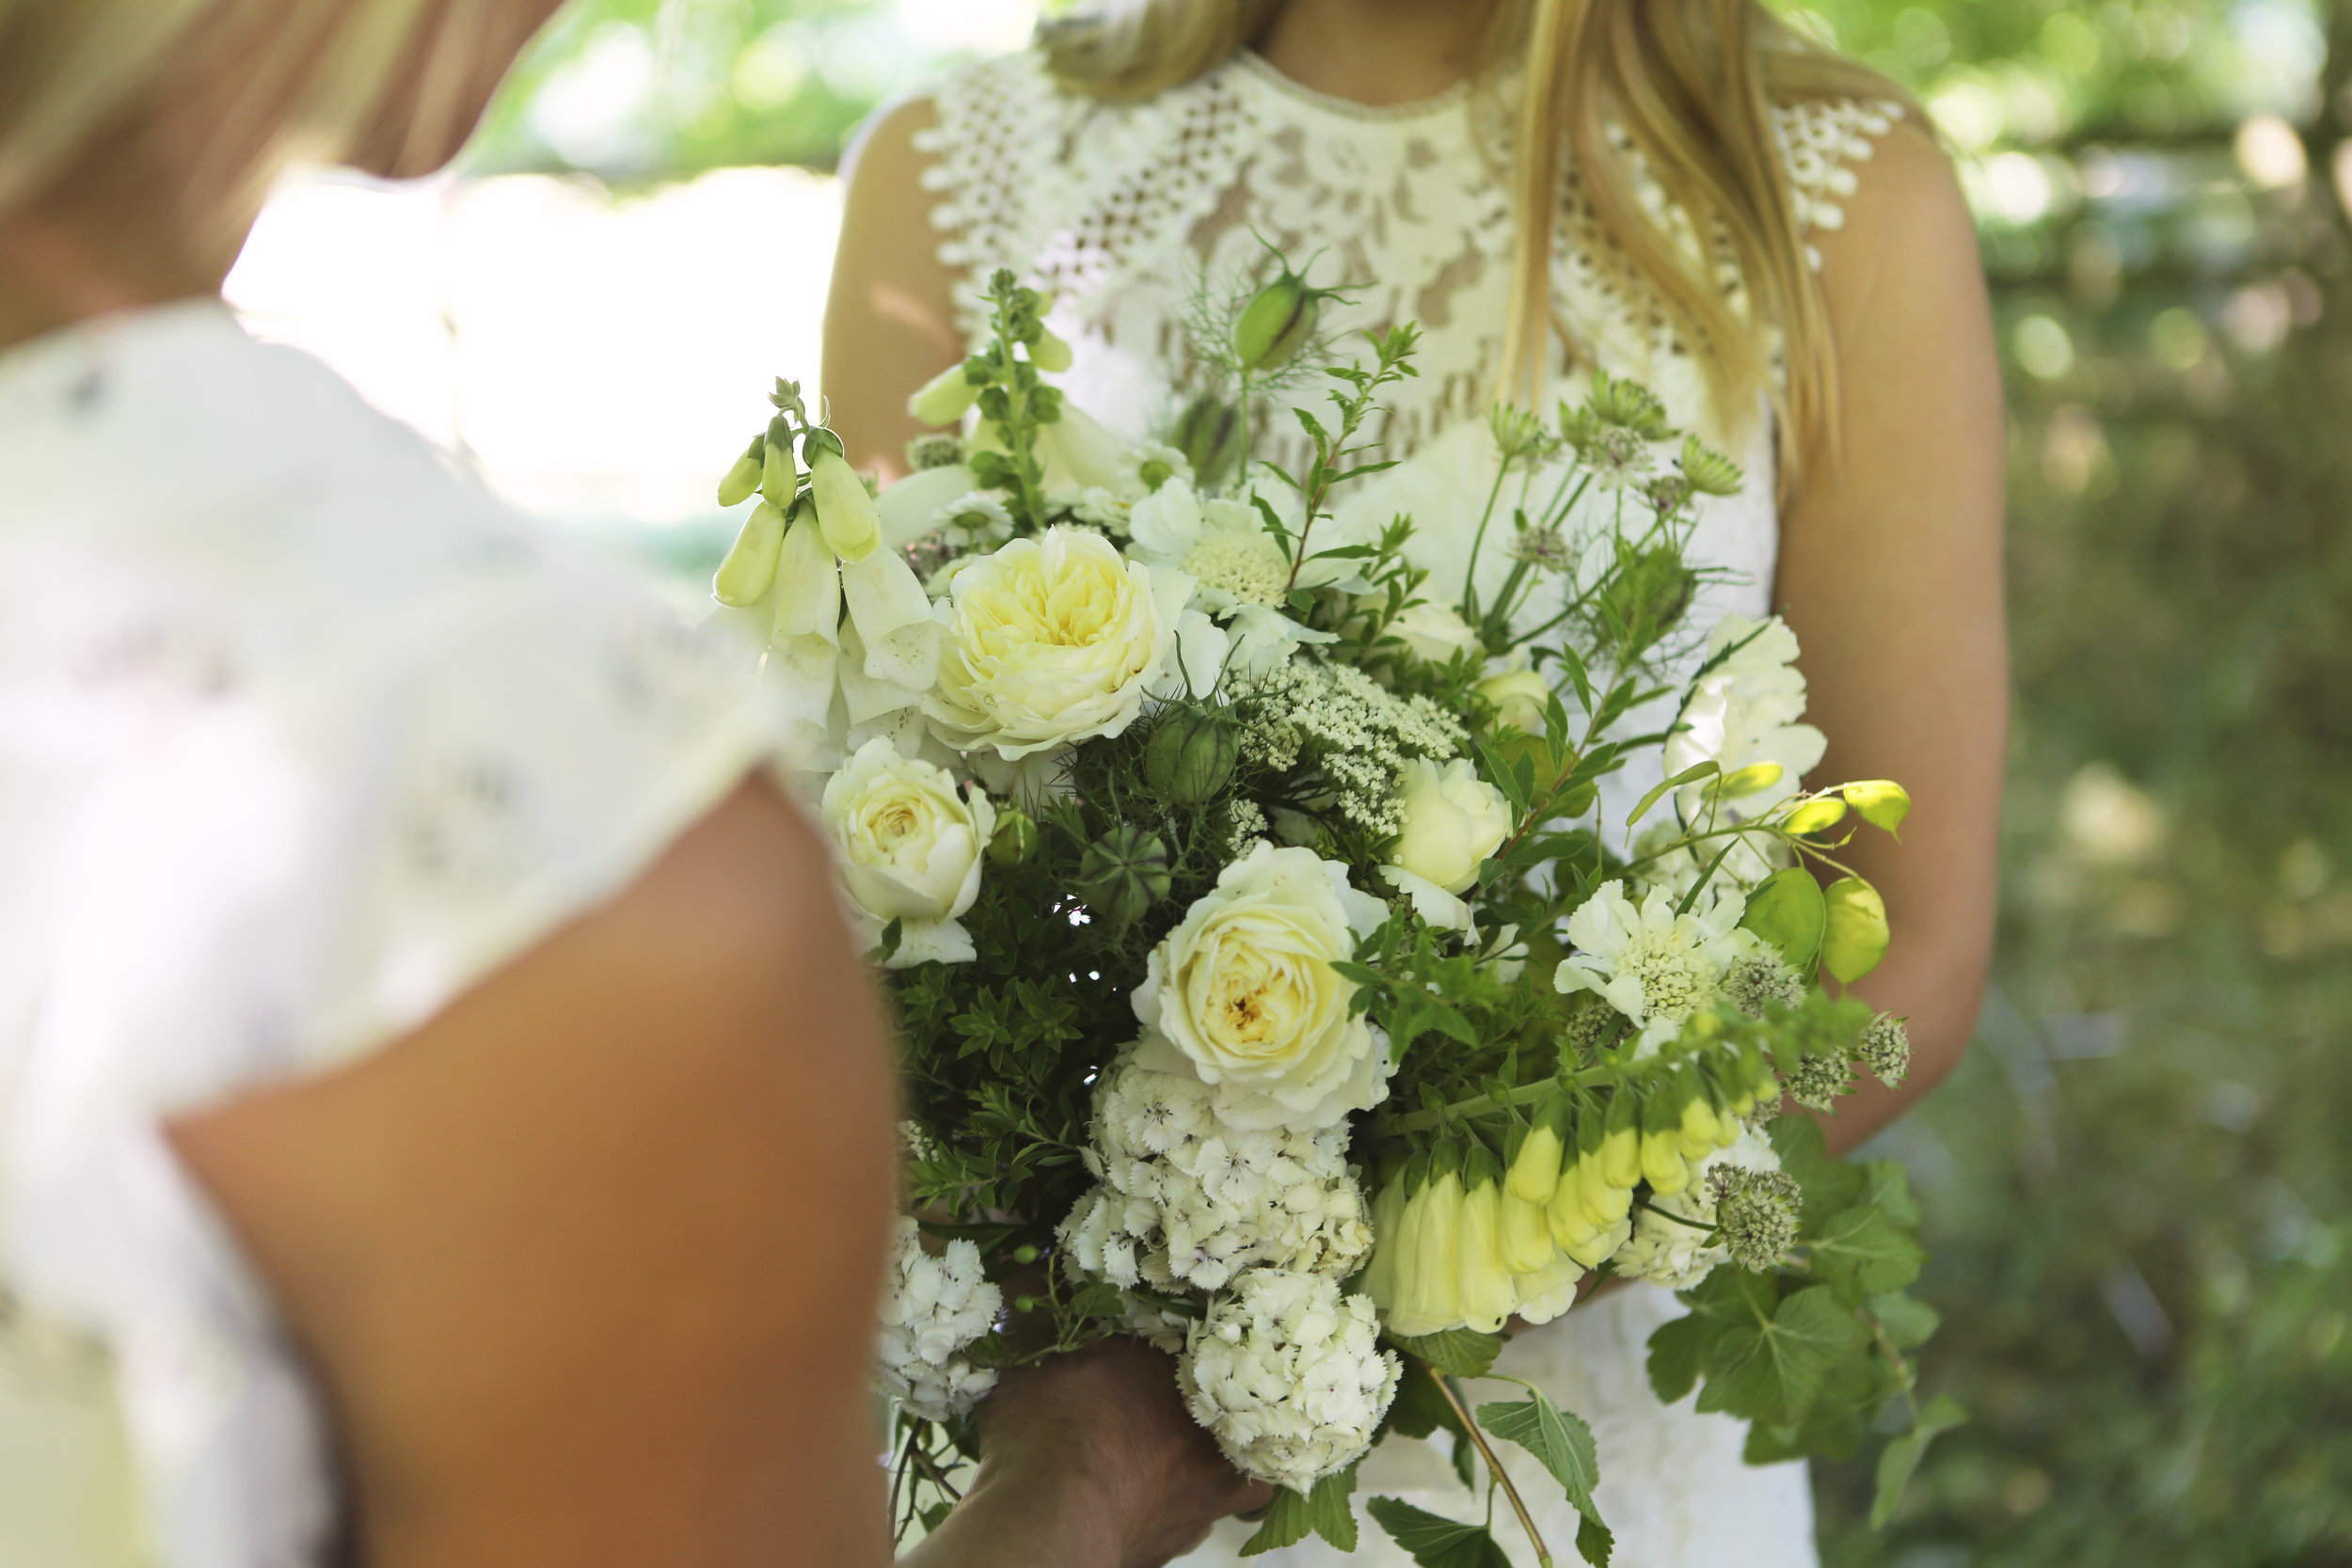 DIY Wedding Flowers workshop - This is a go-to workshop for DIY brides who would like to design their own natural, seasonal eco friendly wedding flowers.